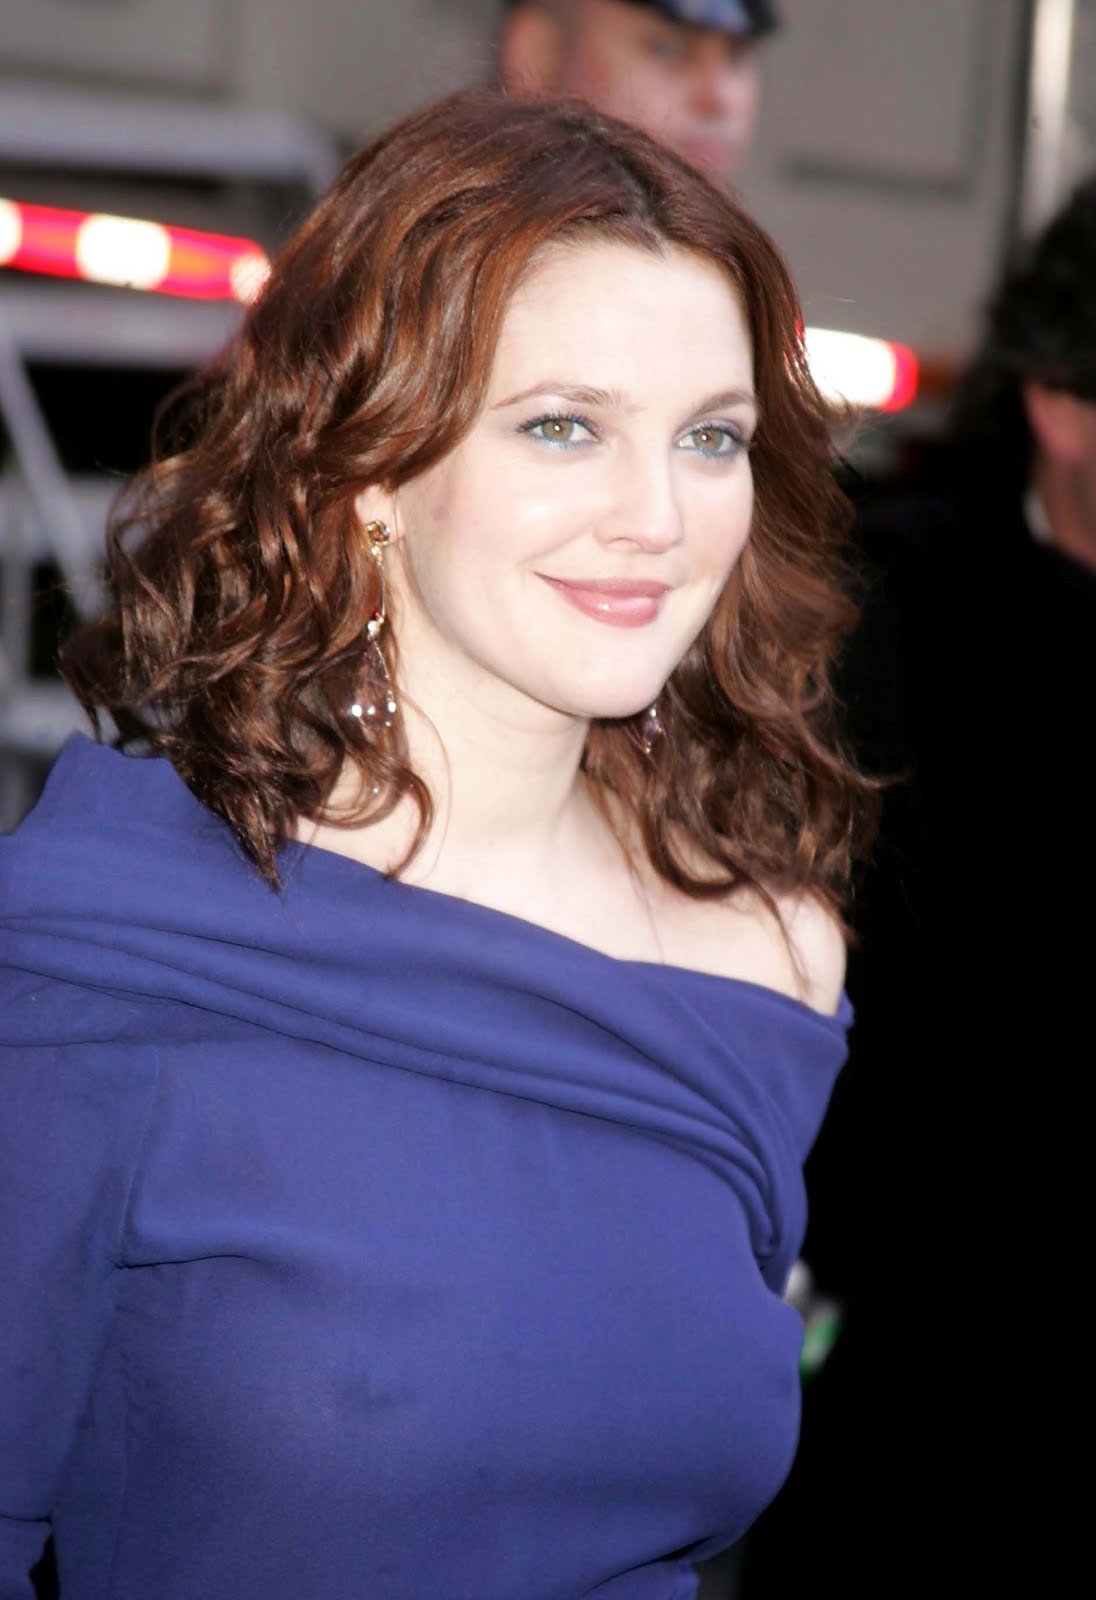 Drew Barrymore Hot Pictures Will Make You Go Crazy For